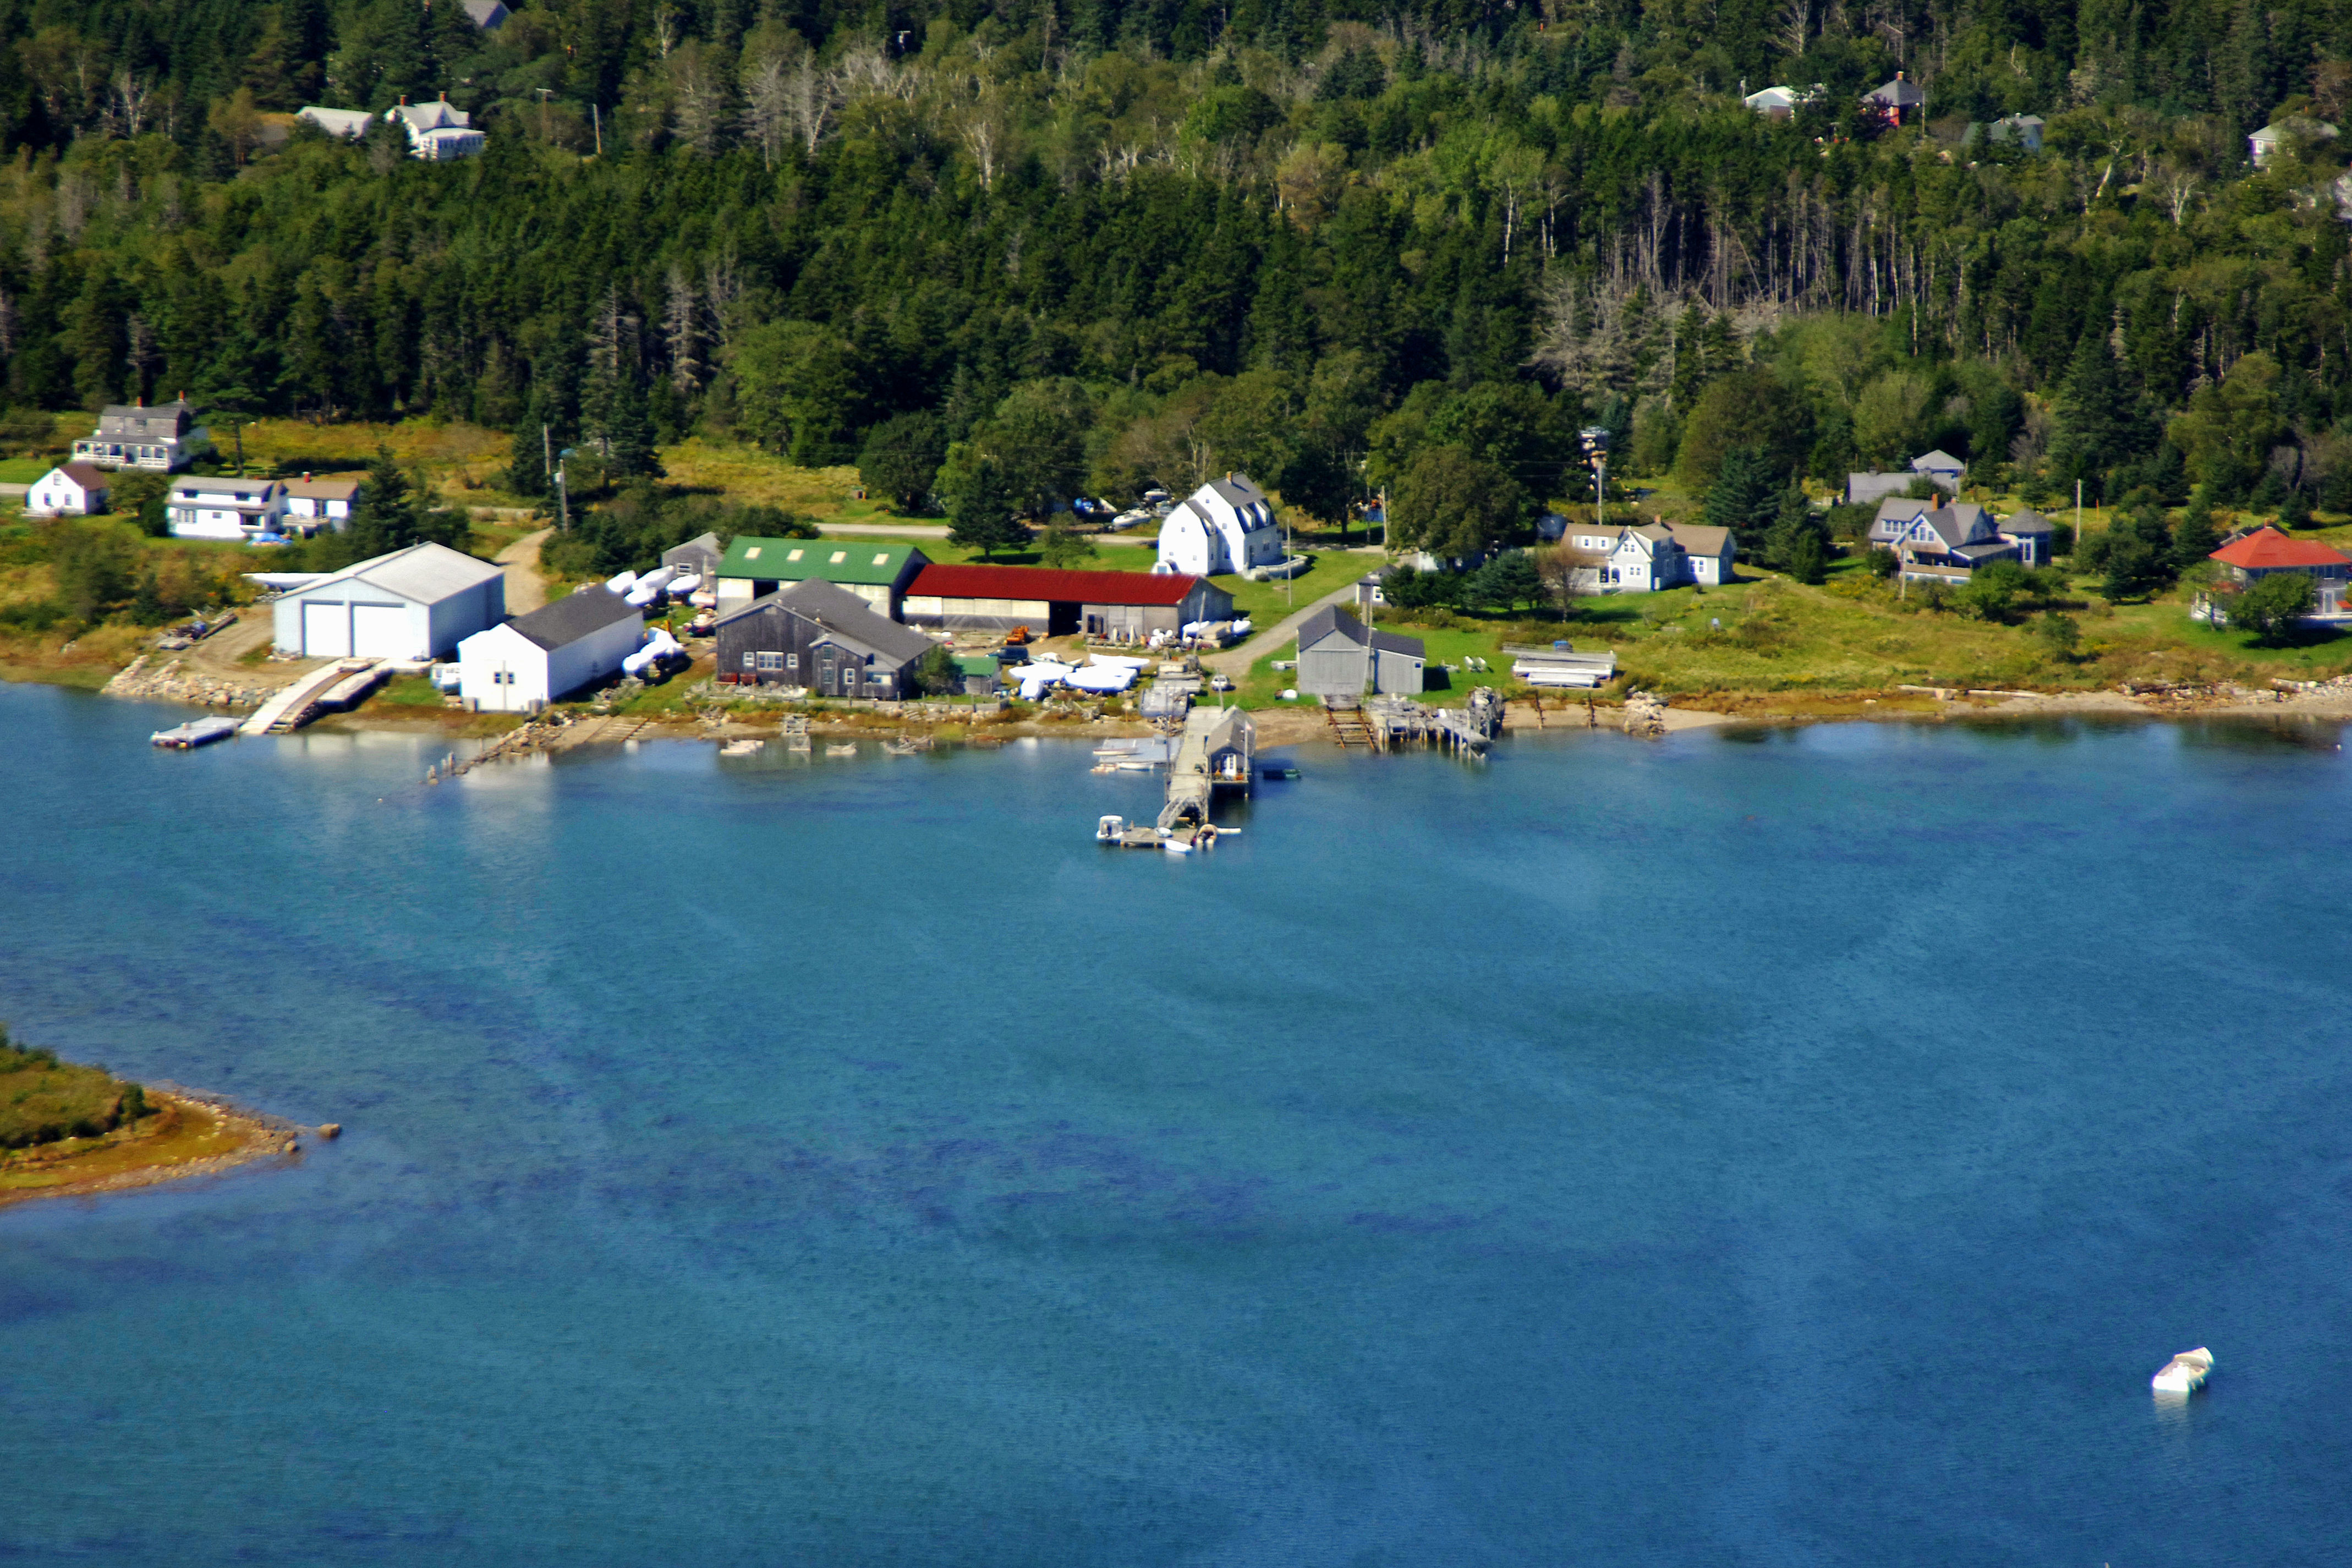 """cranberry isles """"on the cranberry isles, and on other islands, we heard that the lack of high-speed broadband is a serious concern for island sustainability,"""" she said."""